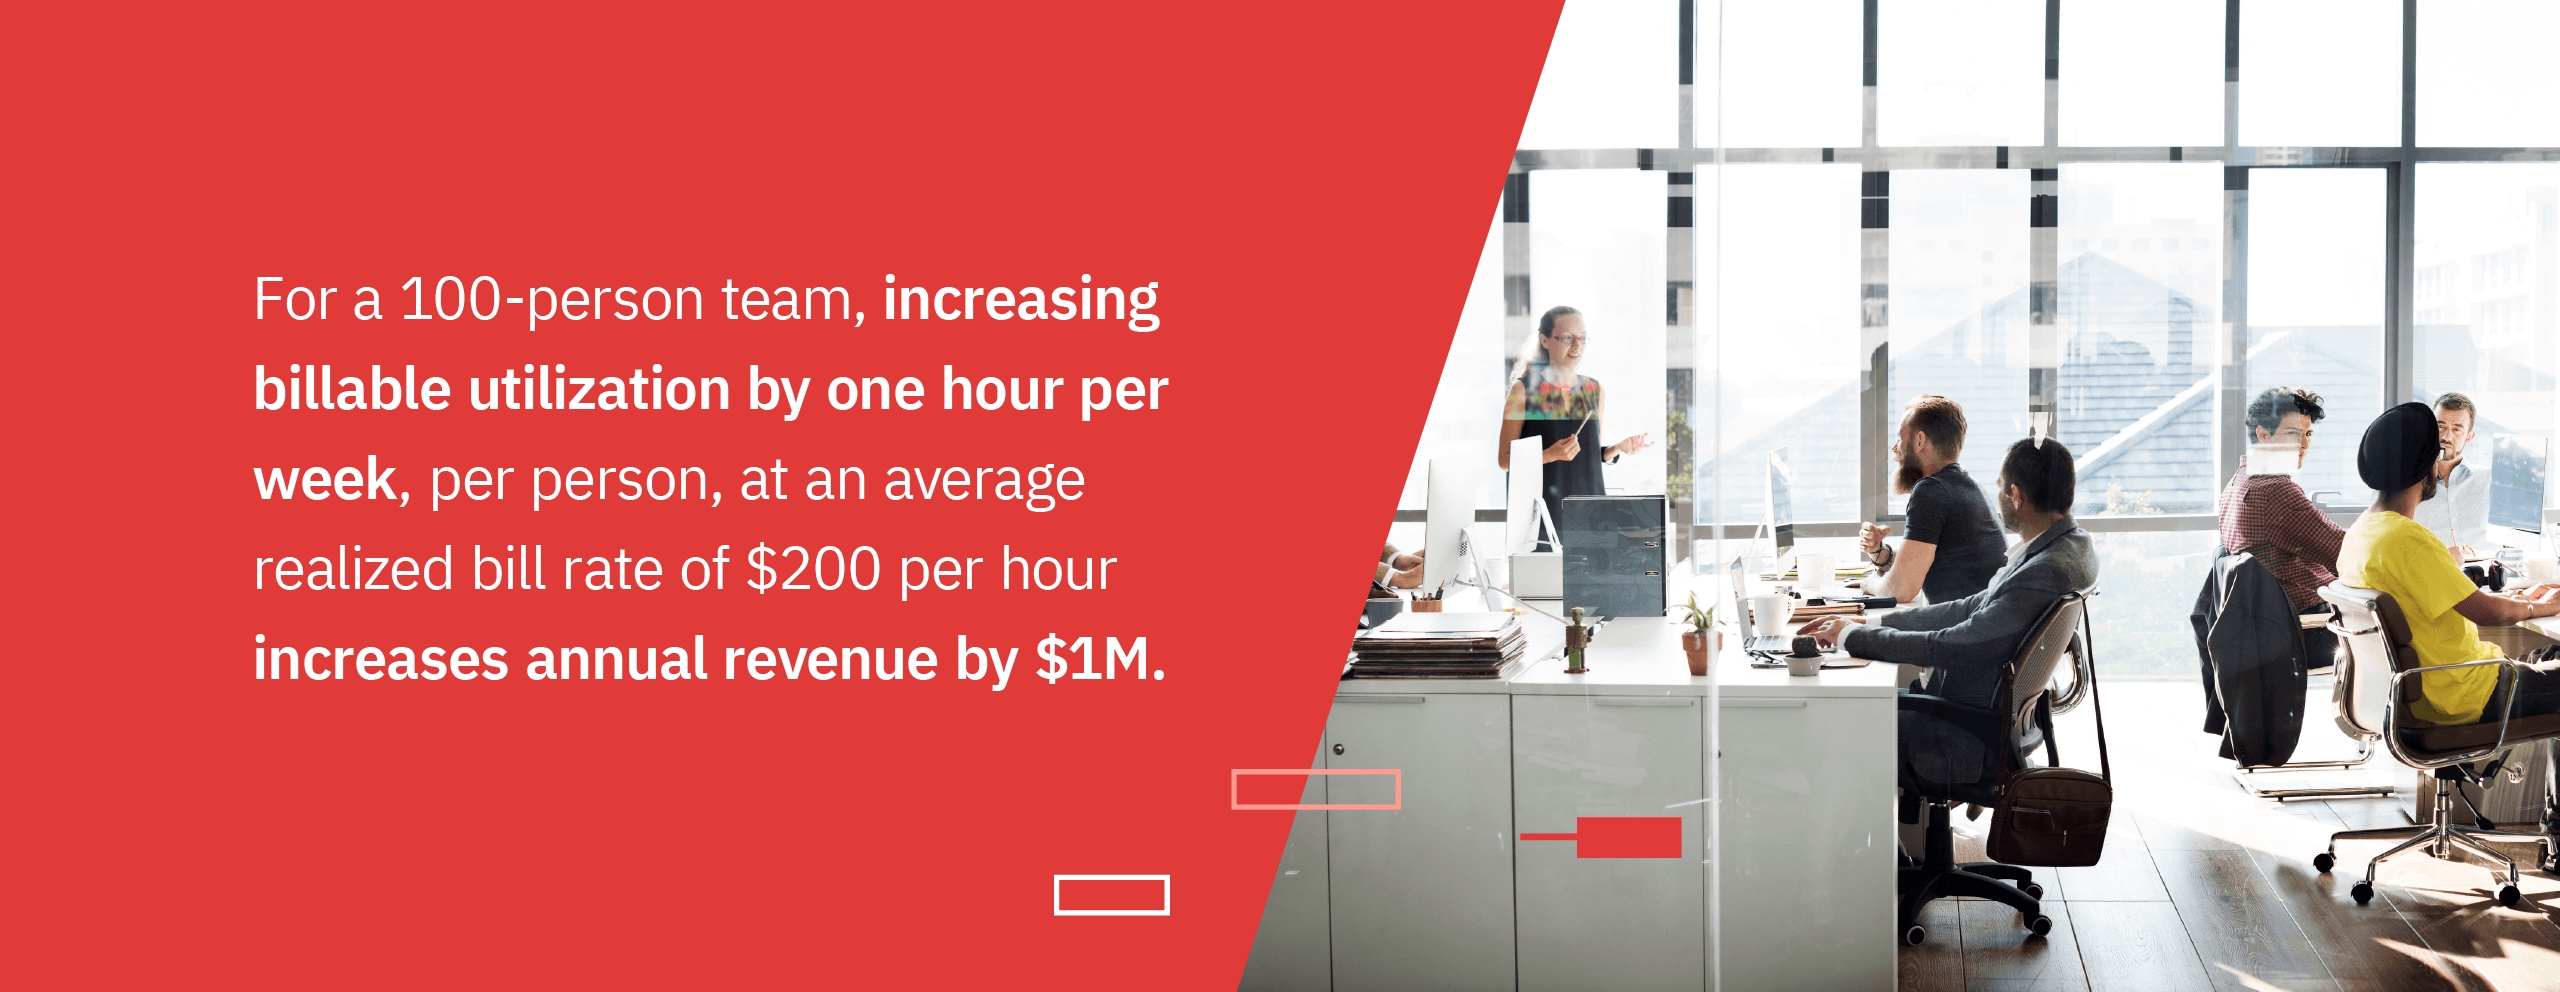 Increasing billable utilization increases annual revenue by $1M